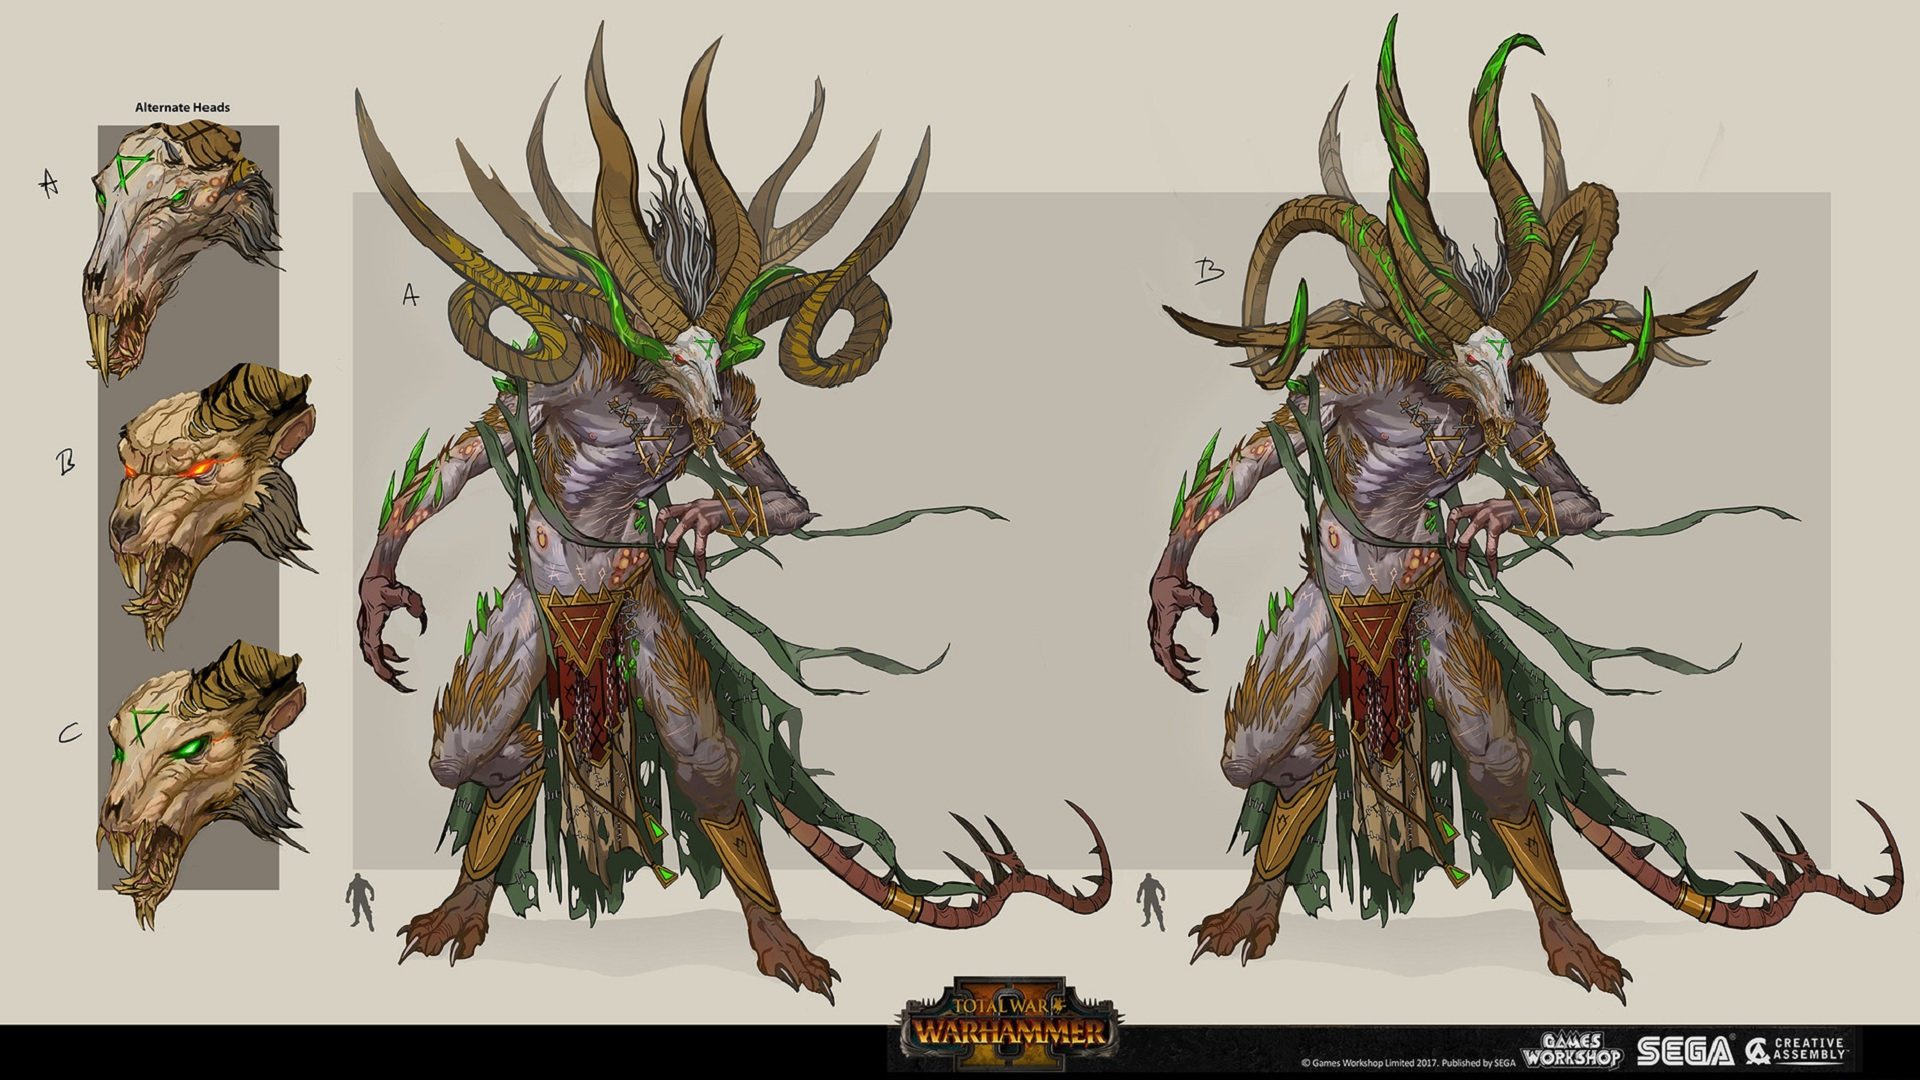 The centrepiece monsters we want to see in Total War